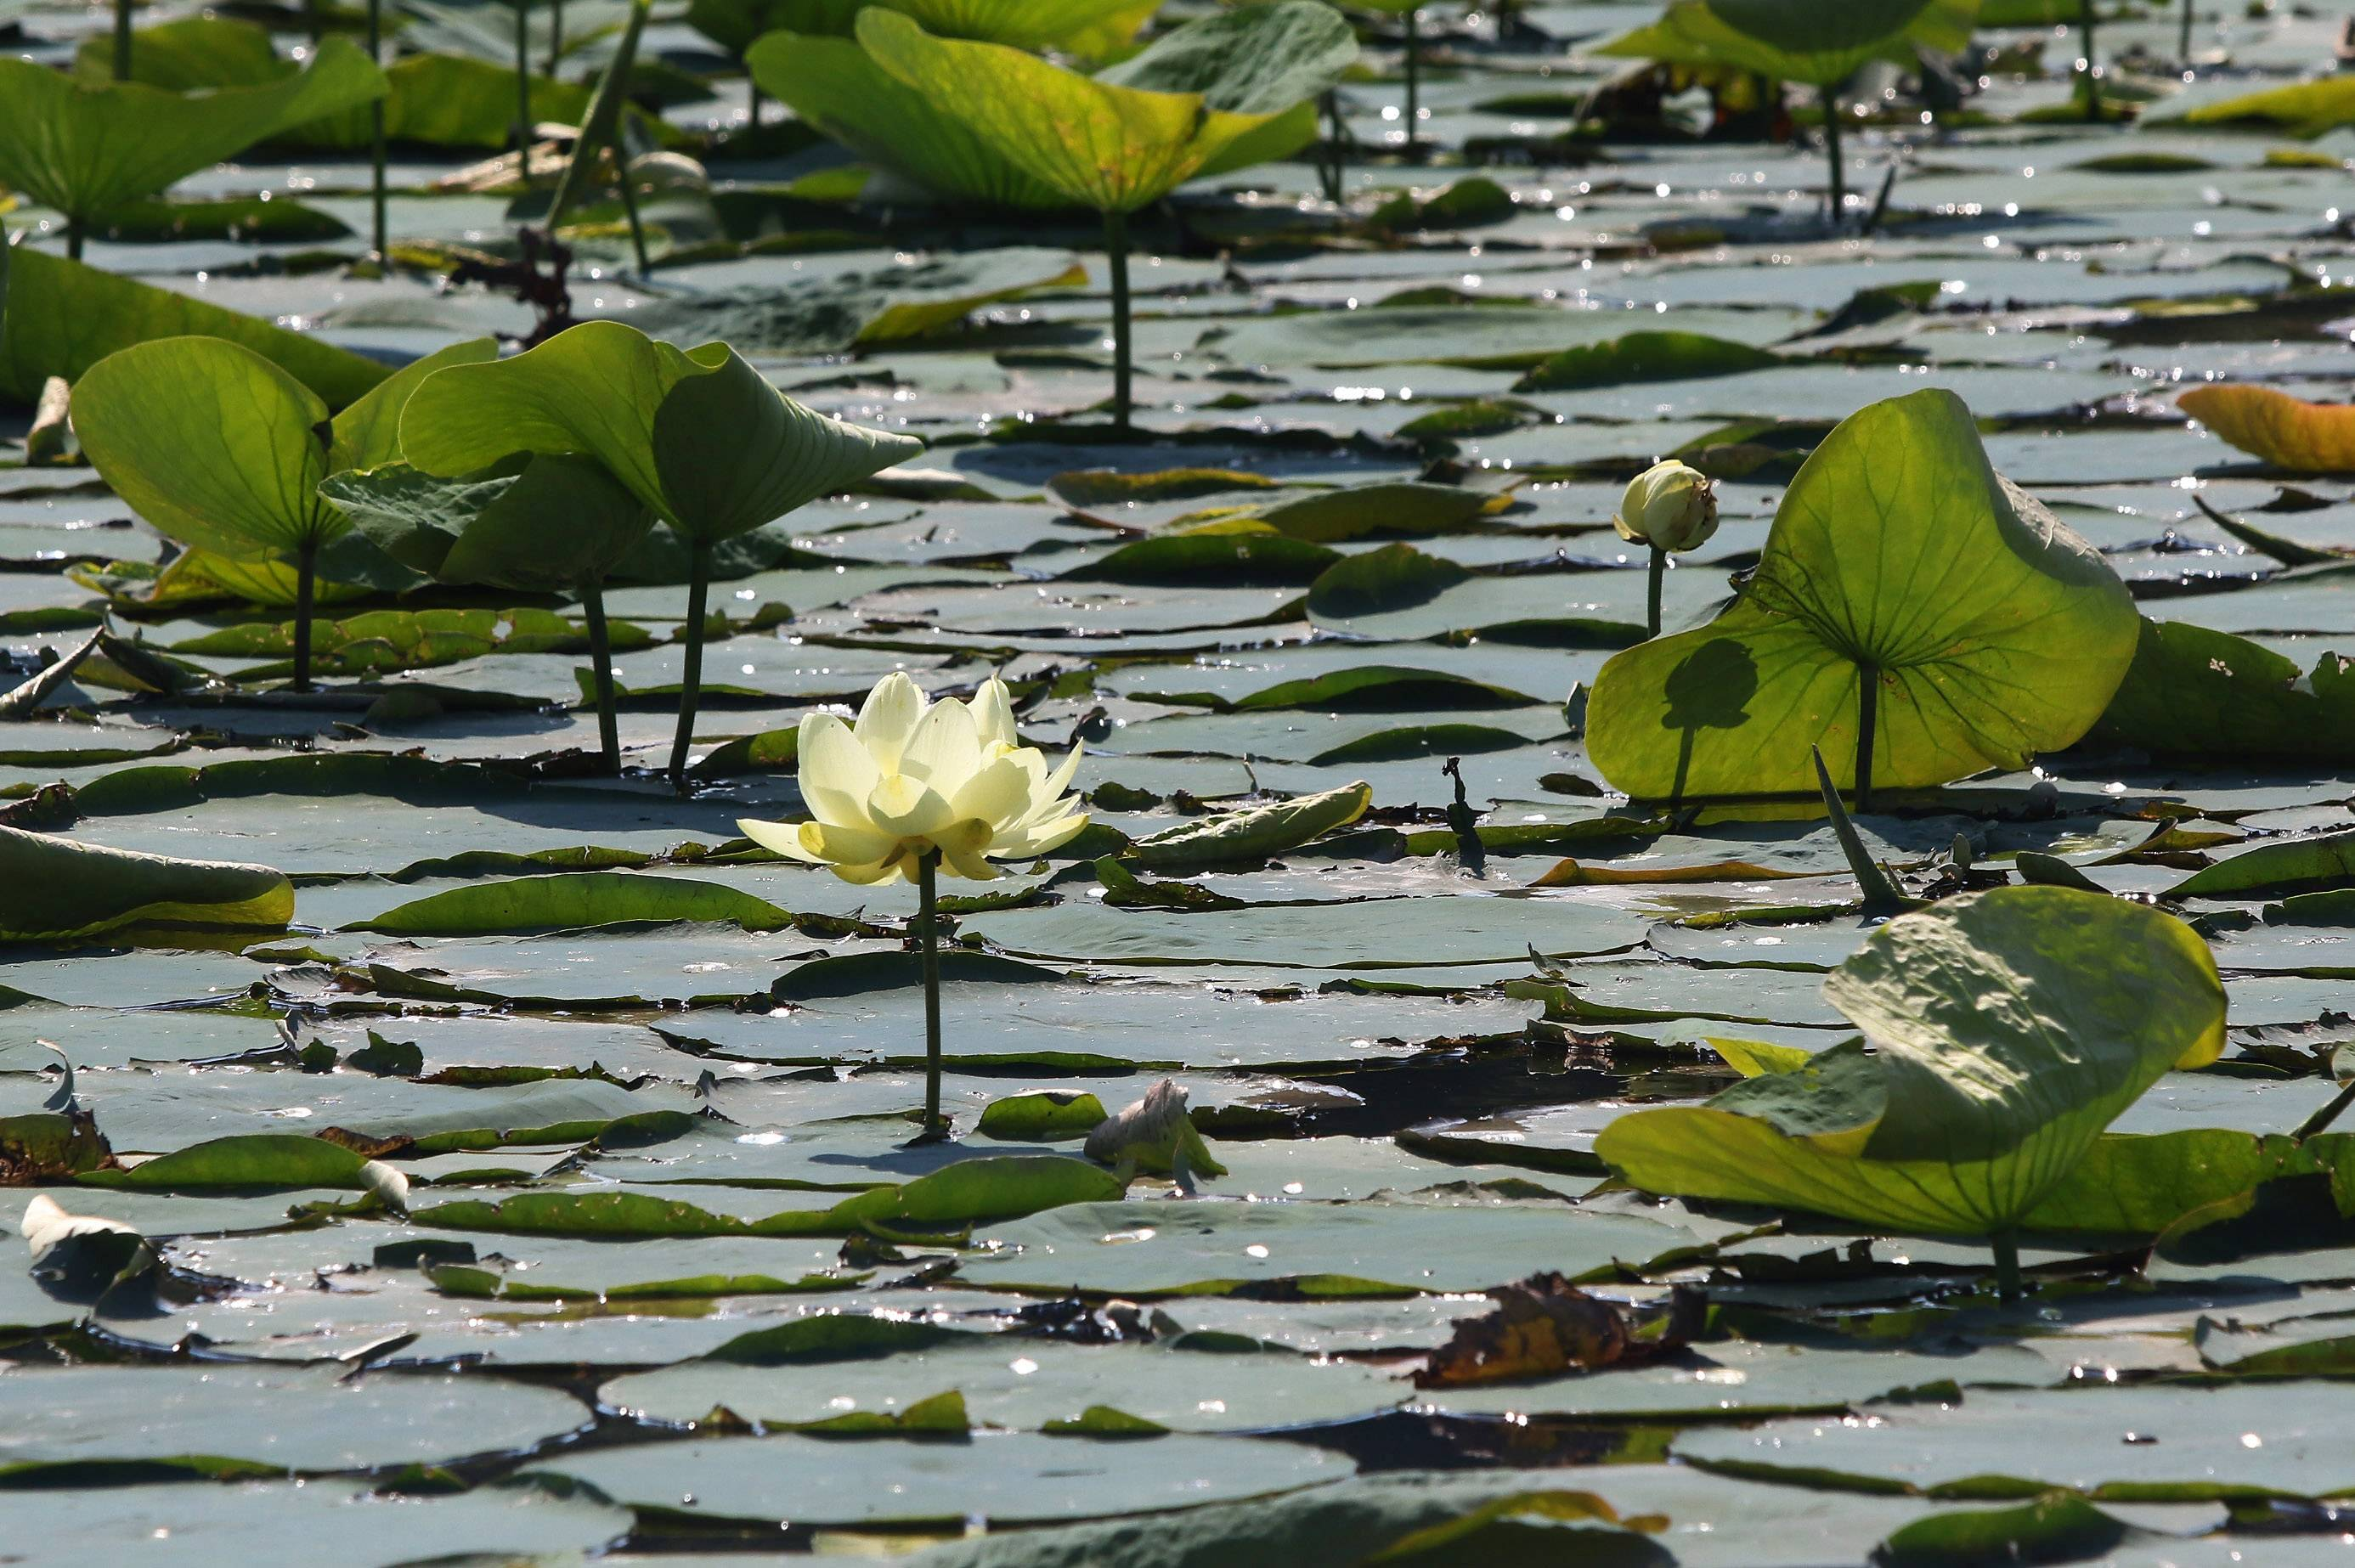 american lotuses are blooming again on the chain o' lakes, Beautiful flower